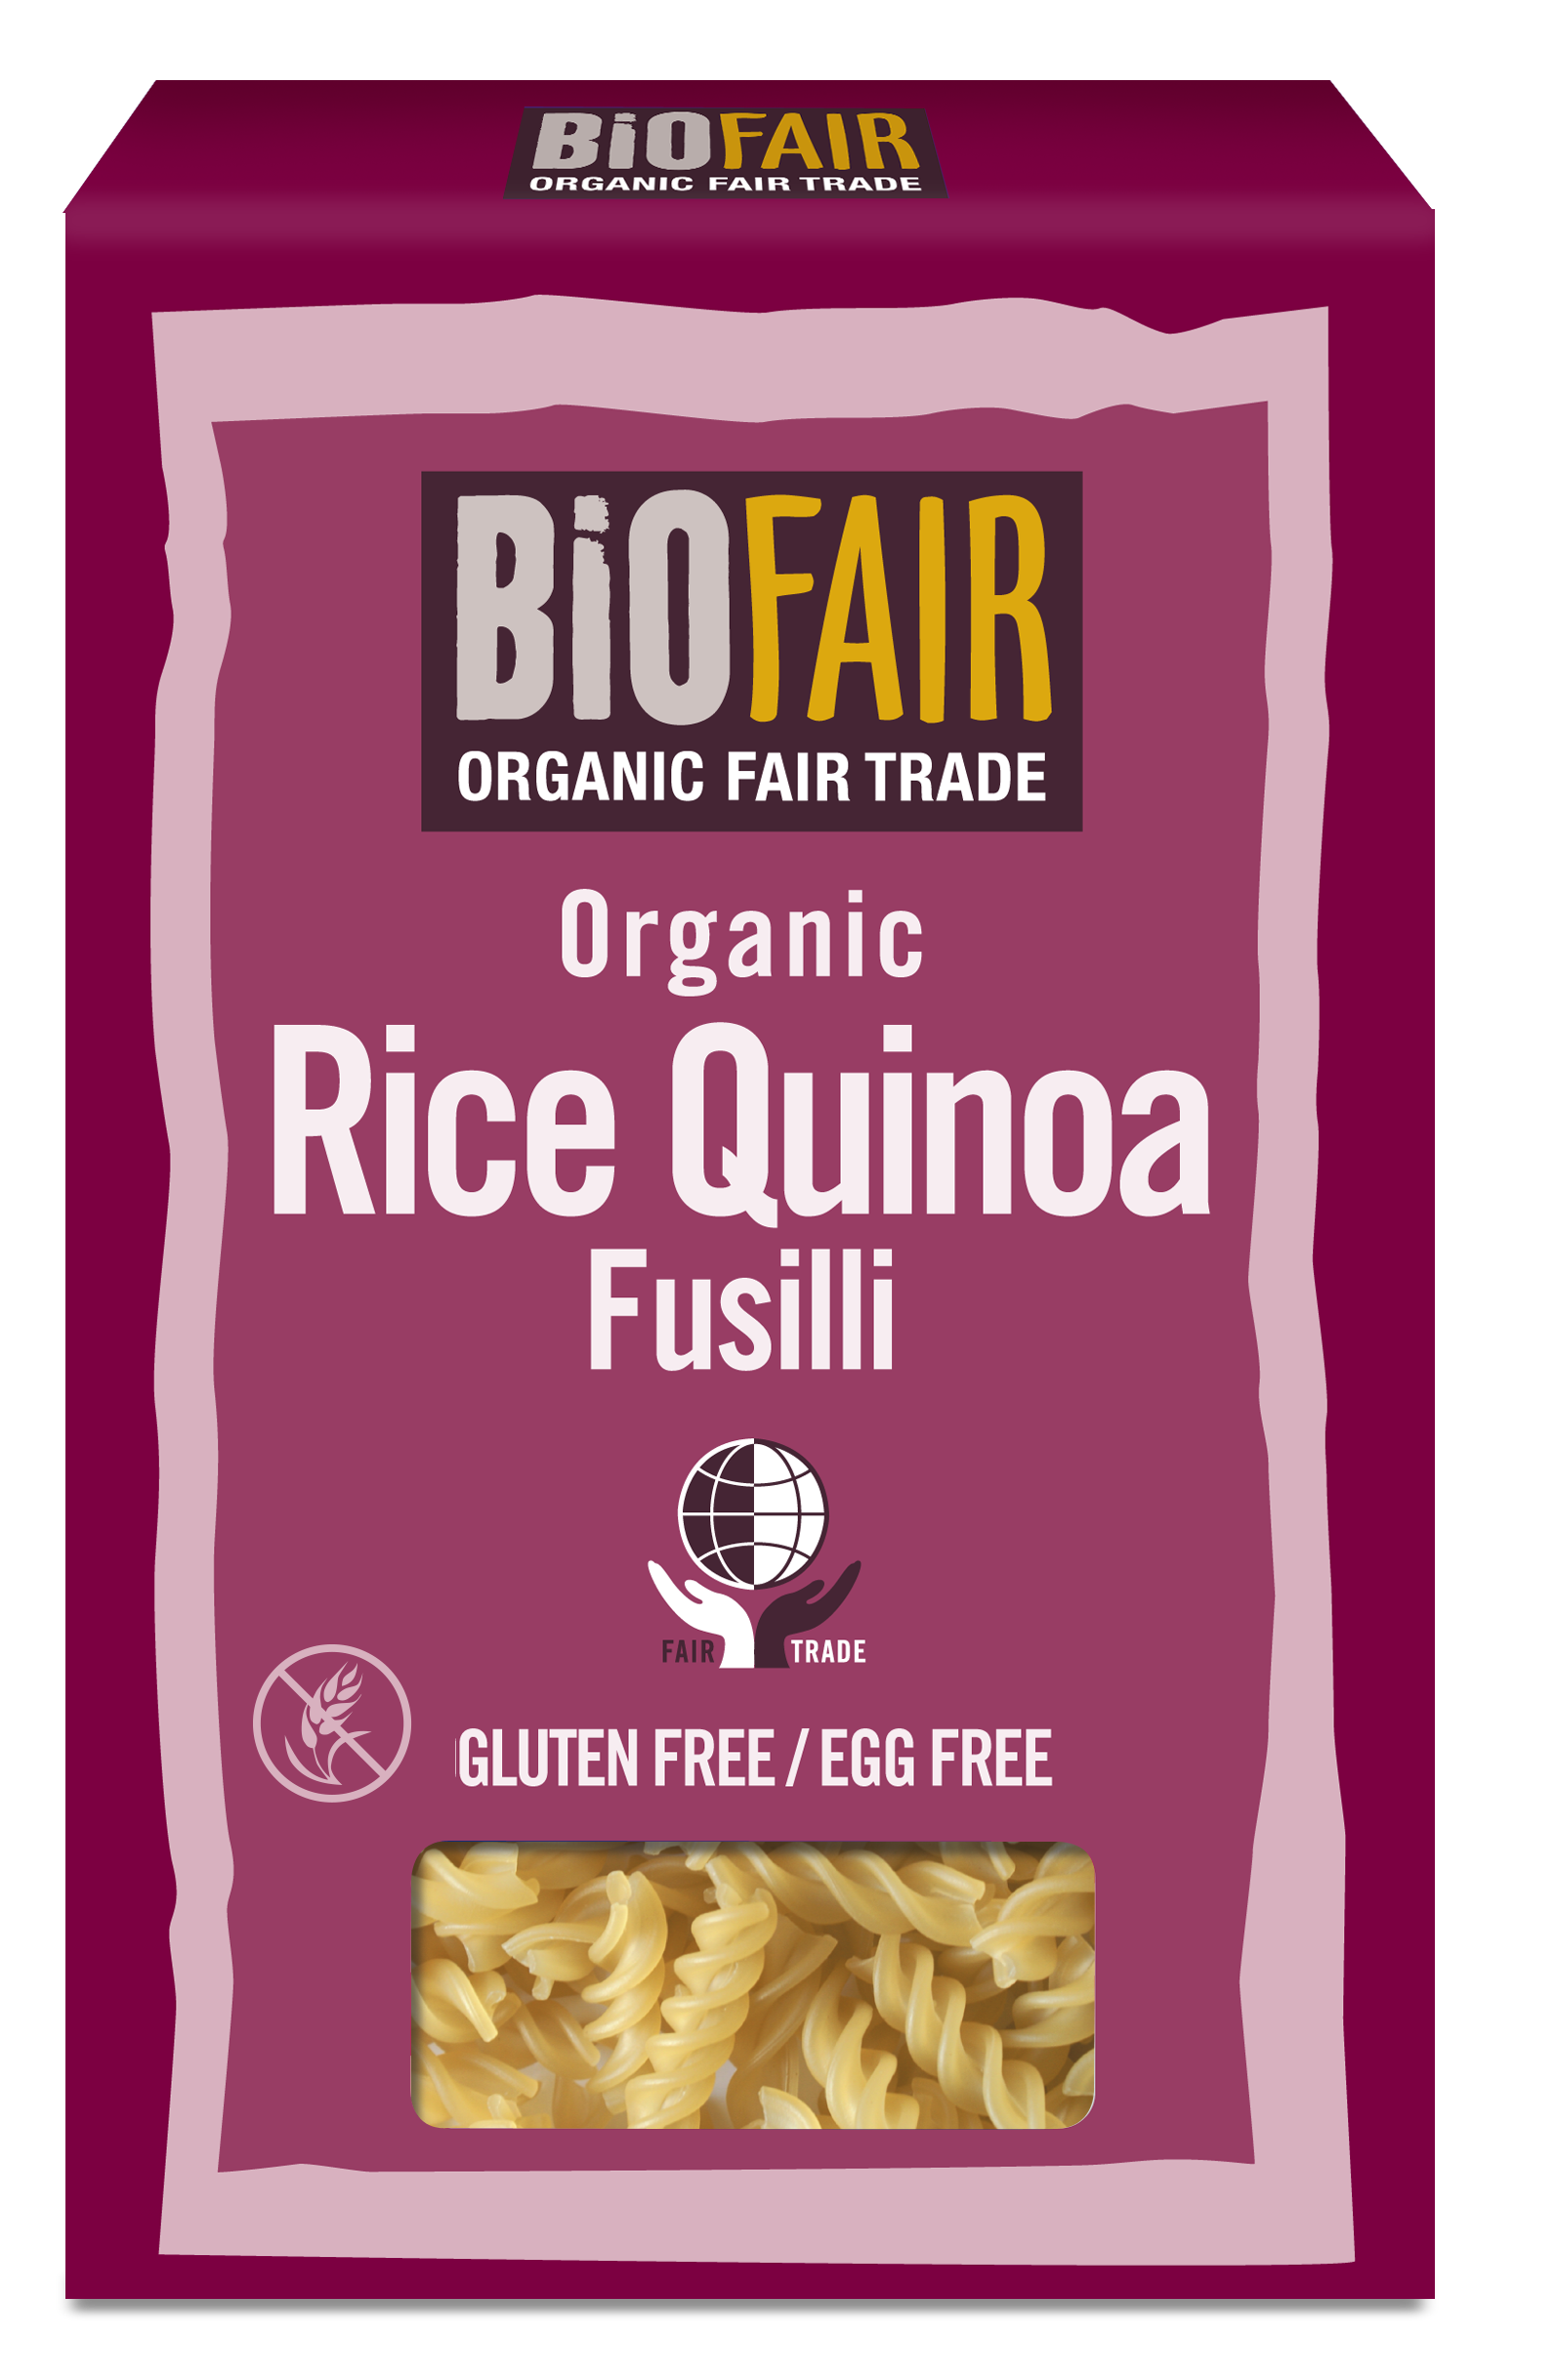 7674 - BioFair Organic Fair Trade Rice Quinoa Fusilli[1].png